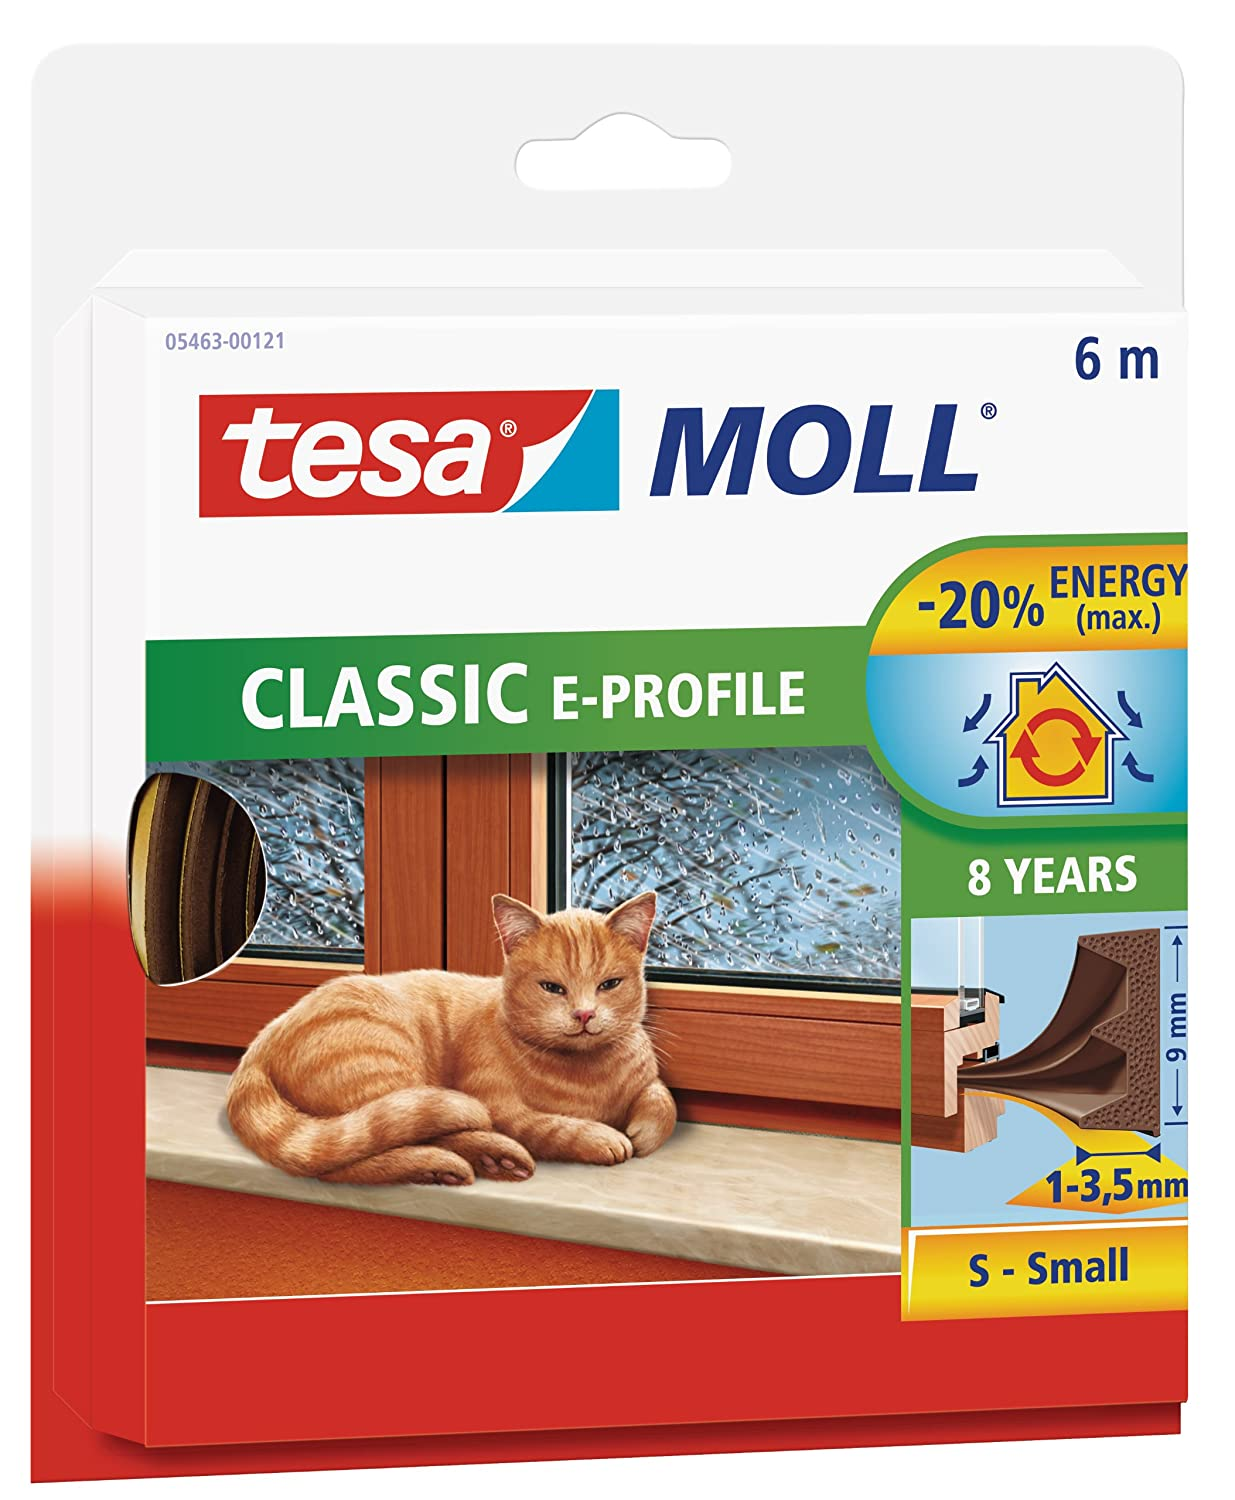 tesa UK E-Profile Draught Excluder for Doors and Windows 6 m x 9 mm - White 05463-00120-00